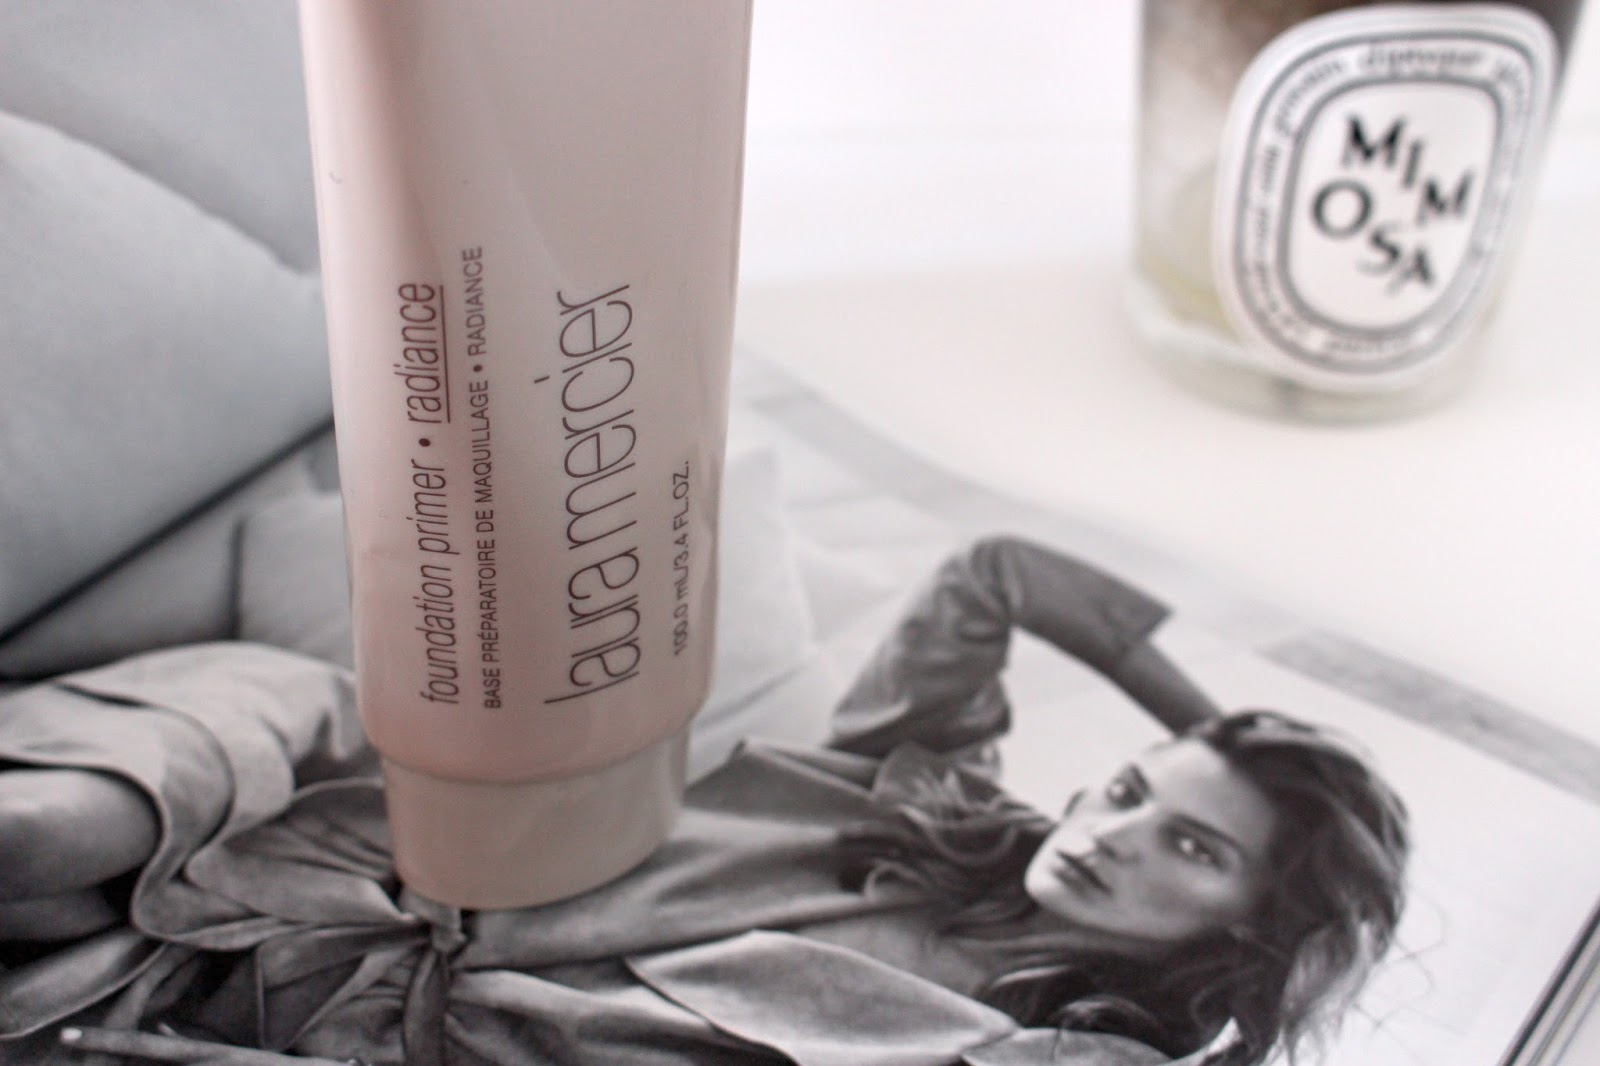 laura mercier radiance primer multi-use as highlighter